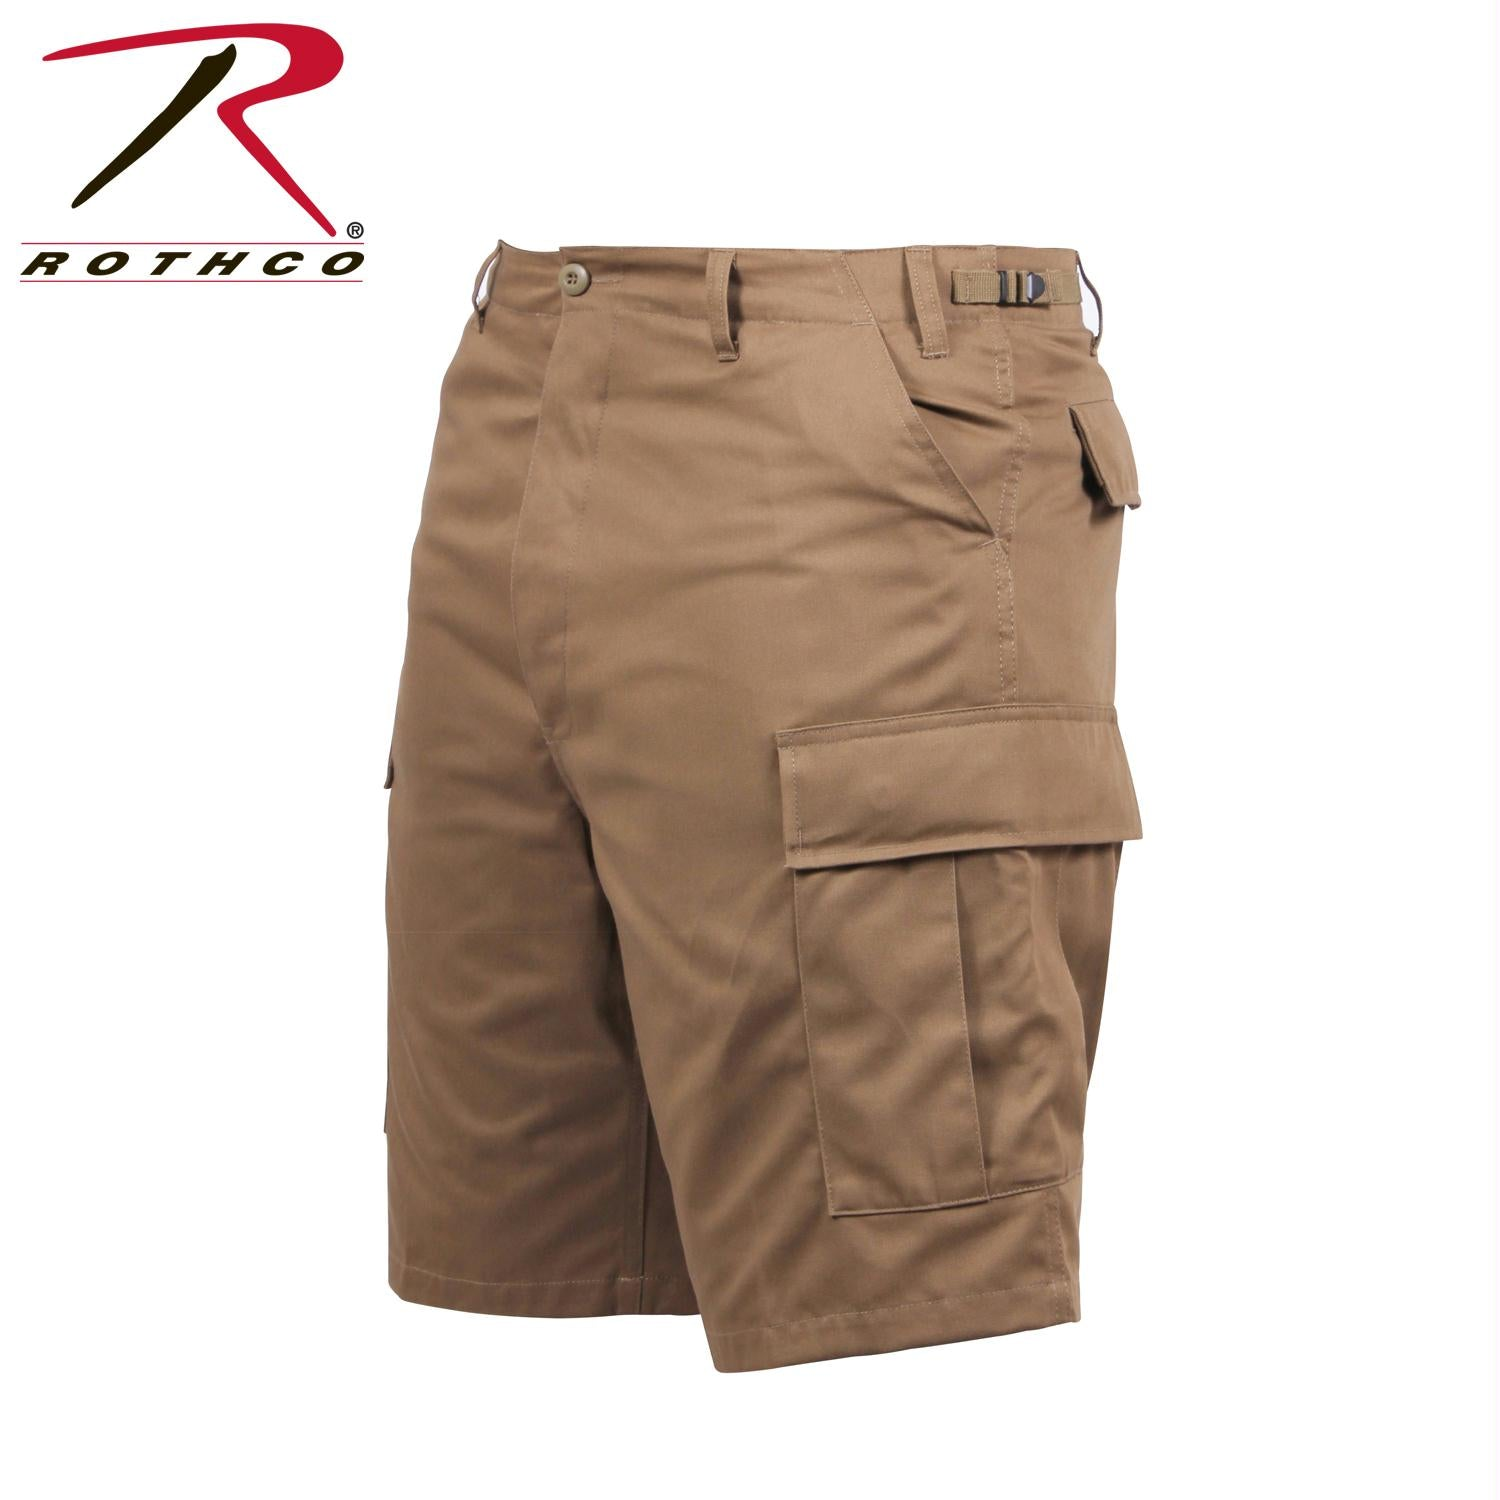 Rothco BDU Shorts - Coyote Brown / XL